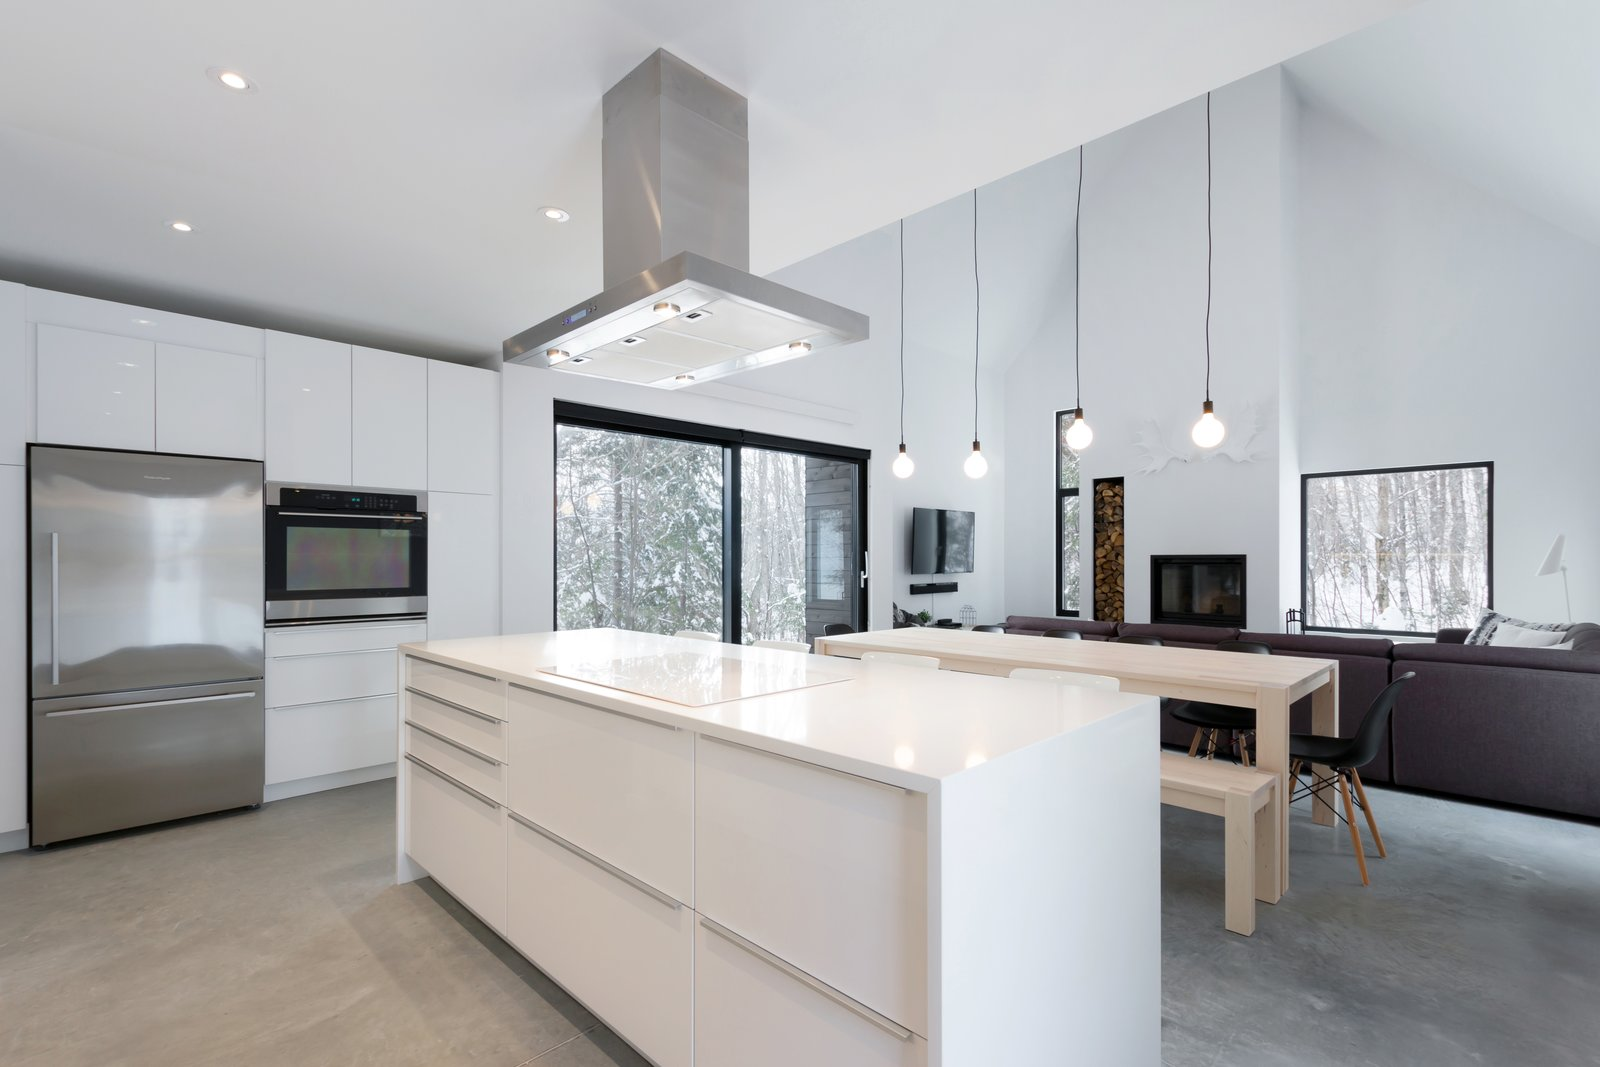 Kitchen, Concrete, Quartzite, Wall Oven, Range Hood, Cooktops, Refrigerator, Ceiling, and White  Best Kitchen Cooktops Quartzite Photos